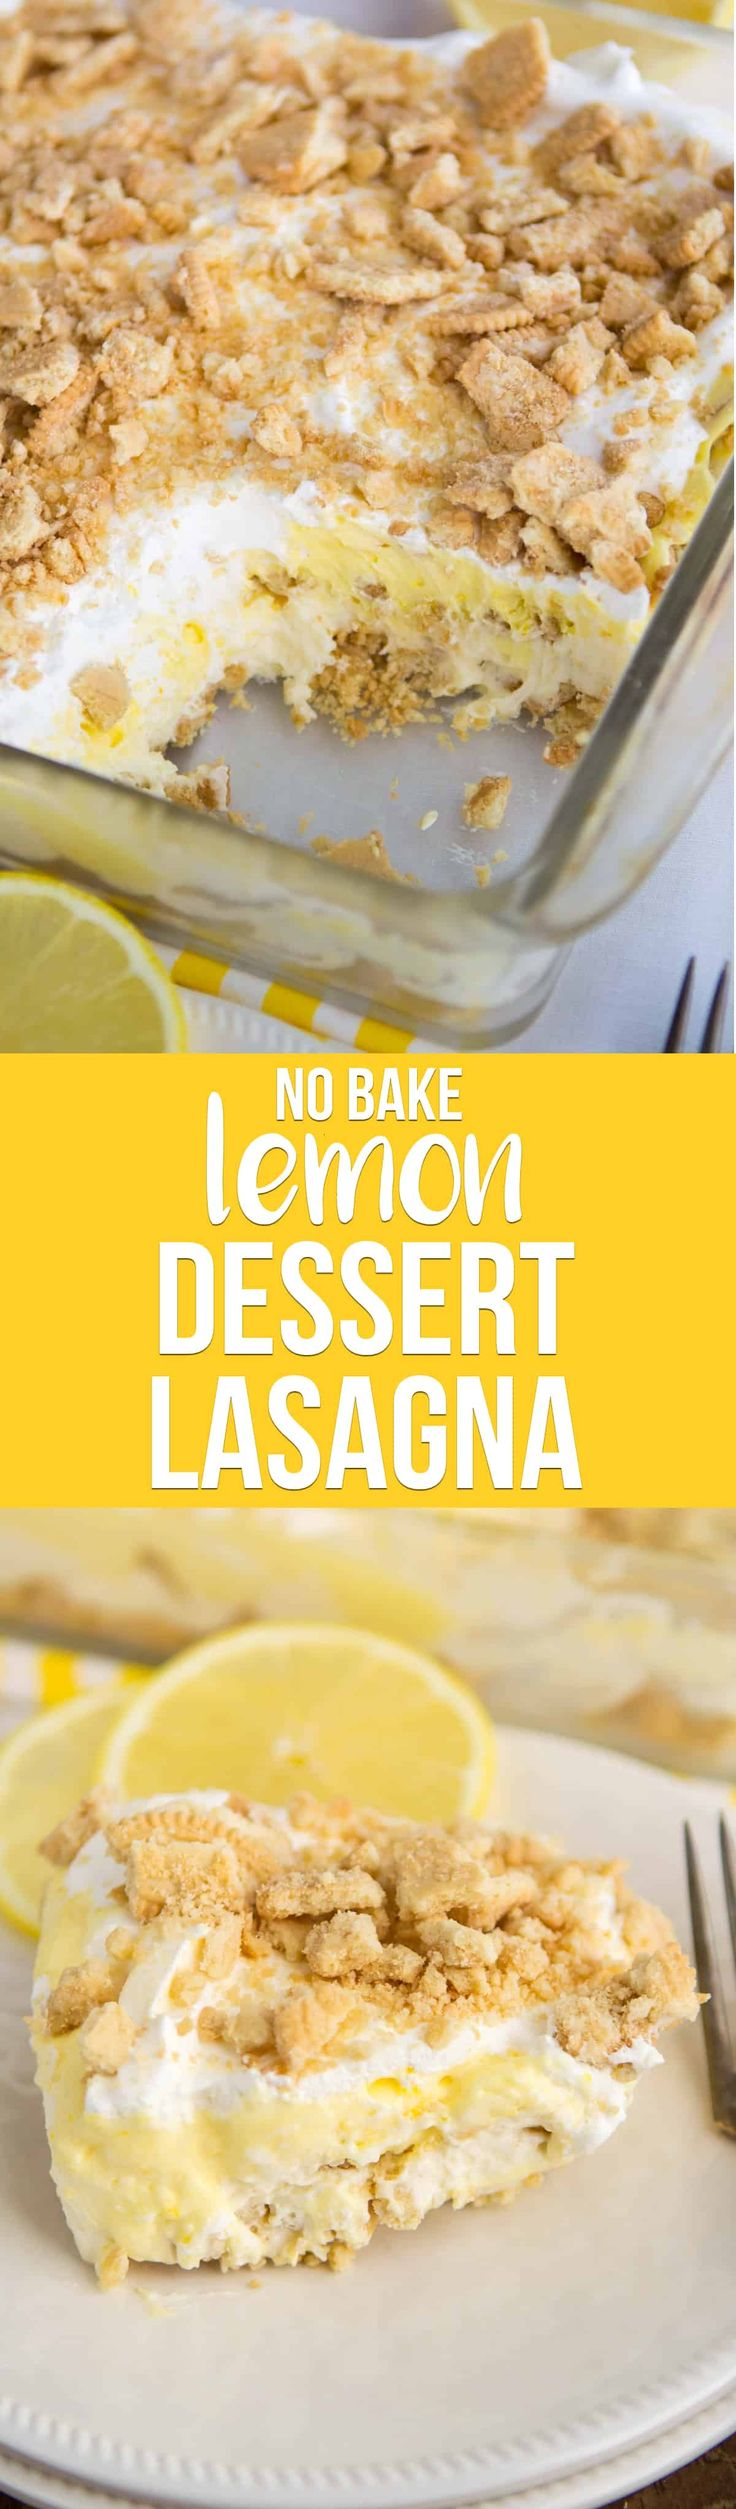 No Bake Lemon Dessert Lasagna has a Golden Oreo crust and is full of lemon flavor from pudding and curd. It's the BEST EVER lemon dessert recipe! via @crazyforcrust